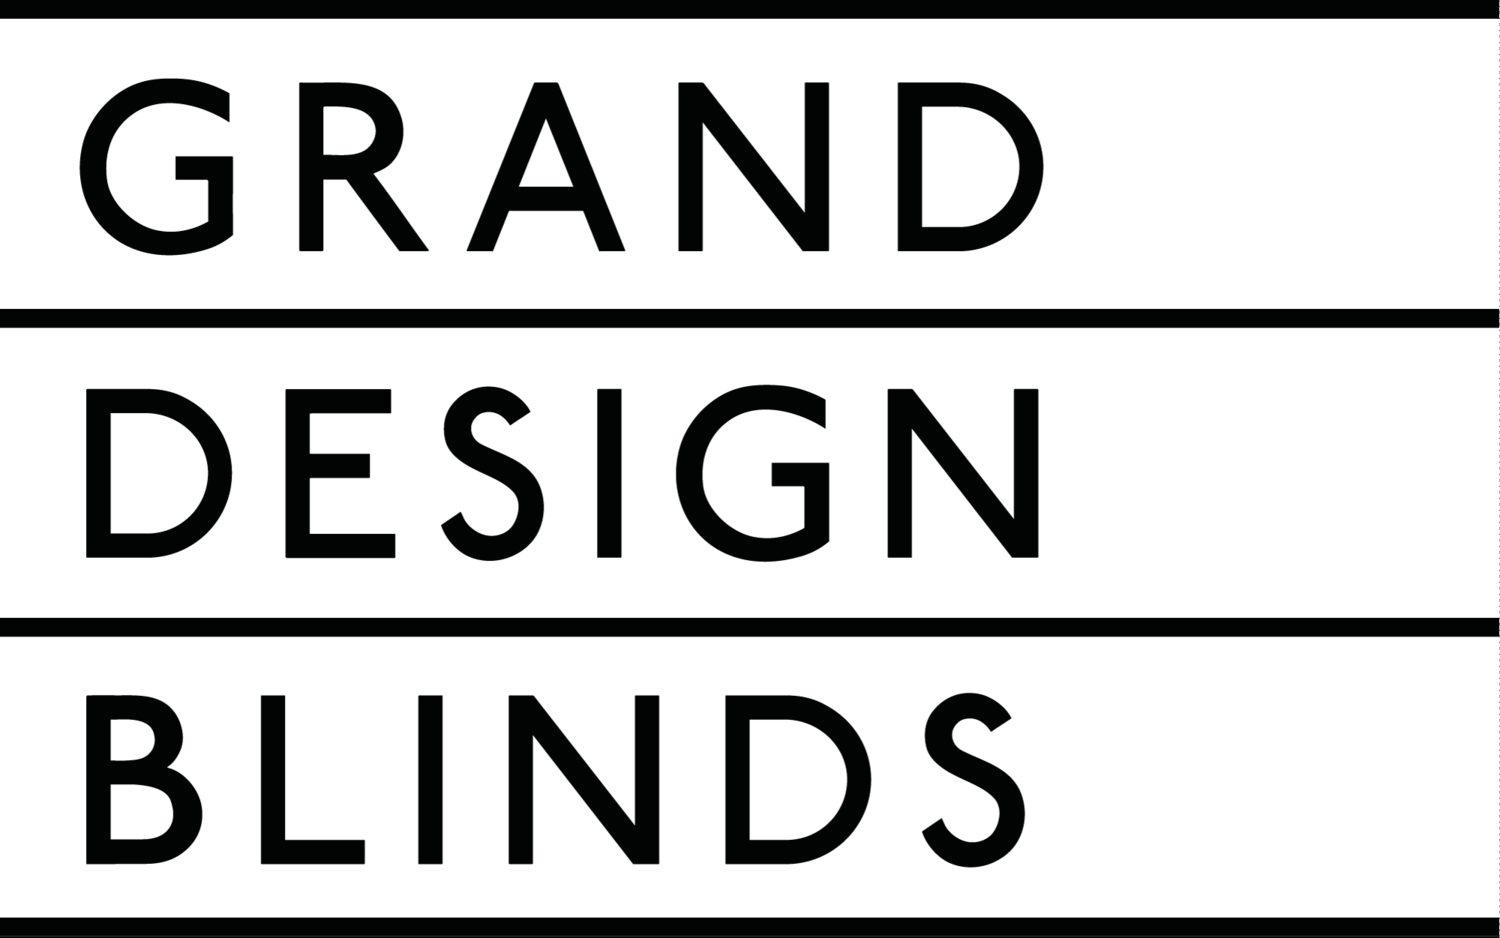 Grand Design Blinds